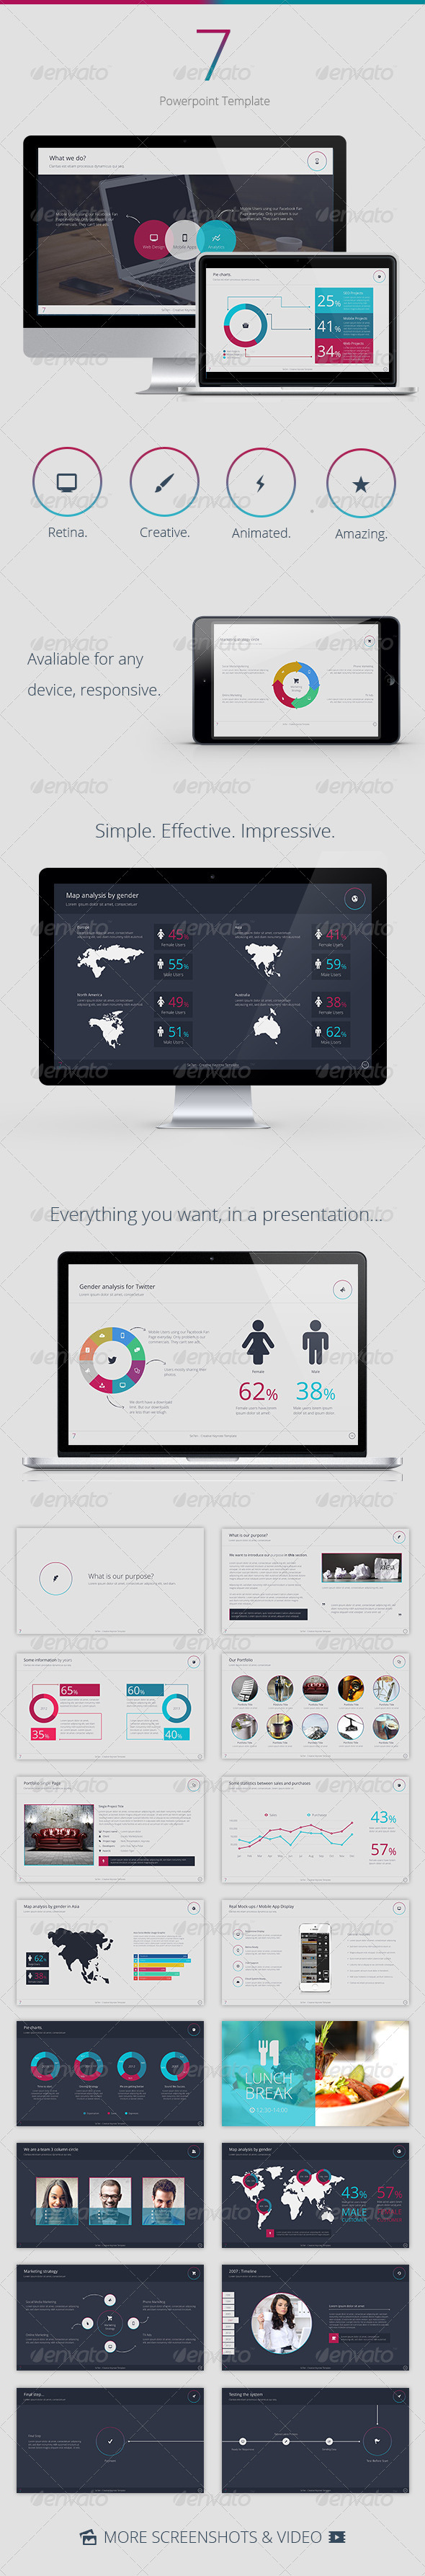 GraphicRiver Se7en Powerpoint Template 7669391